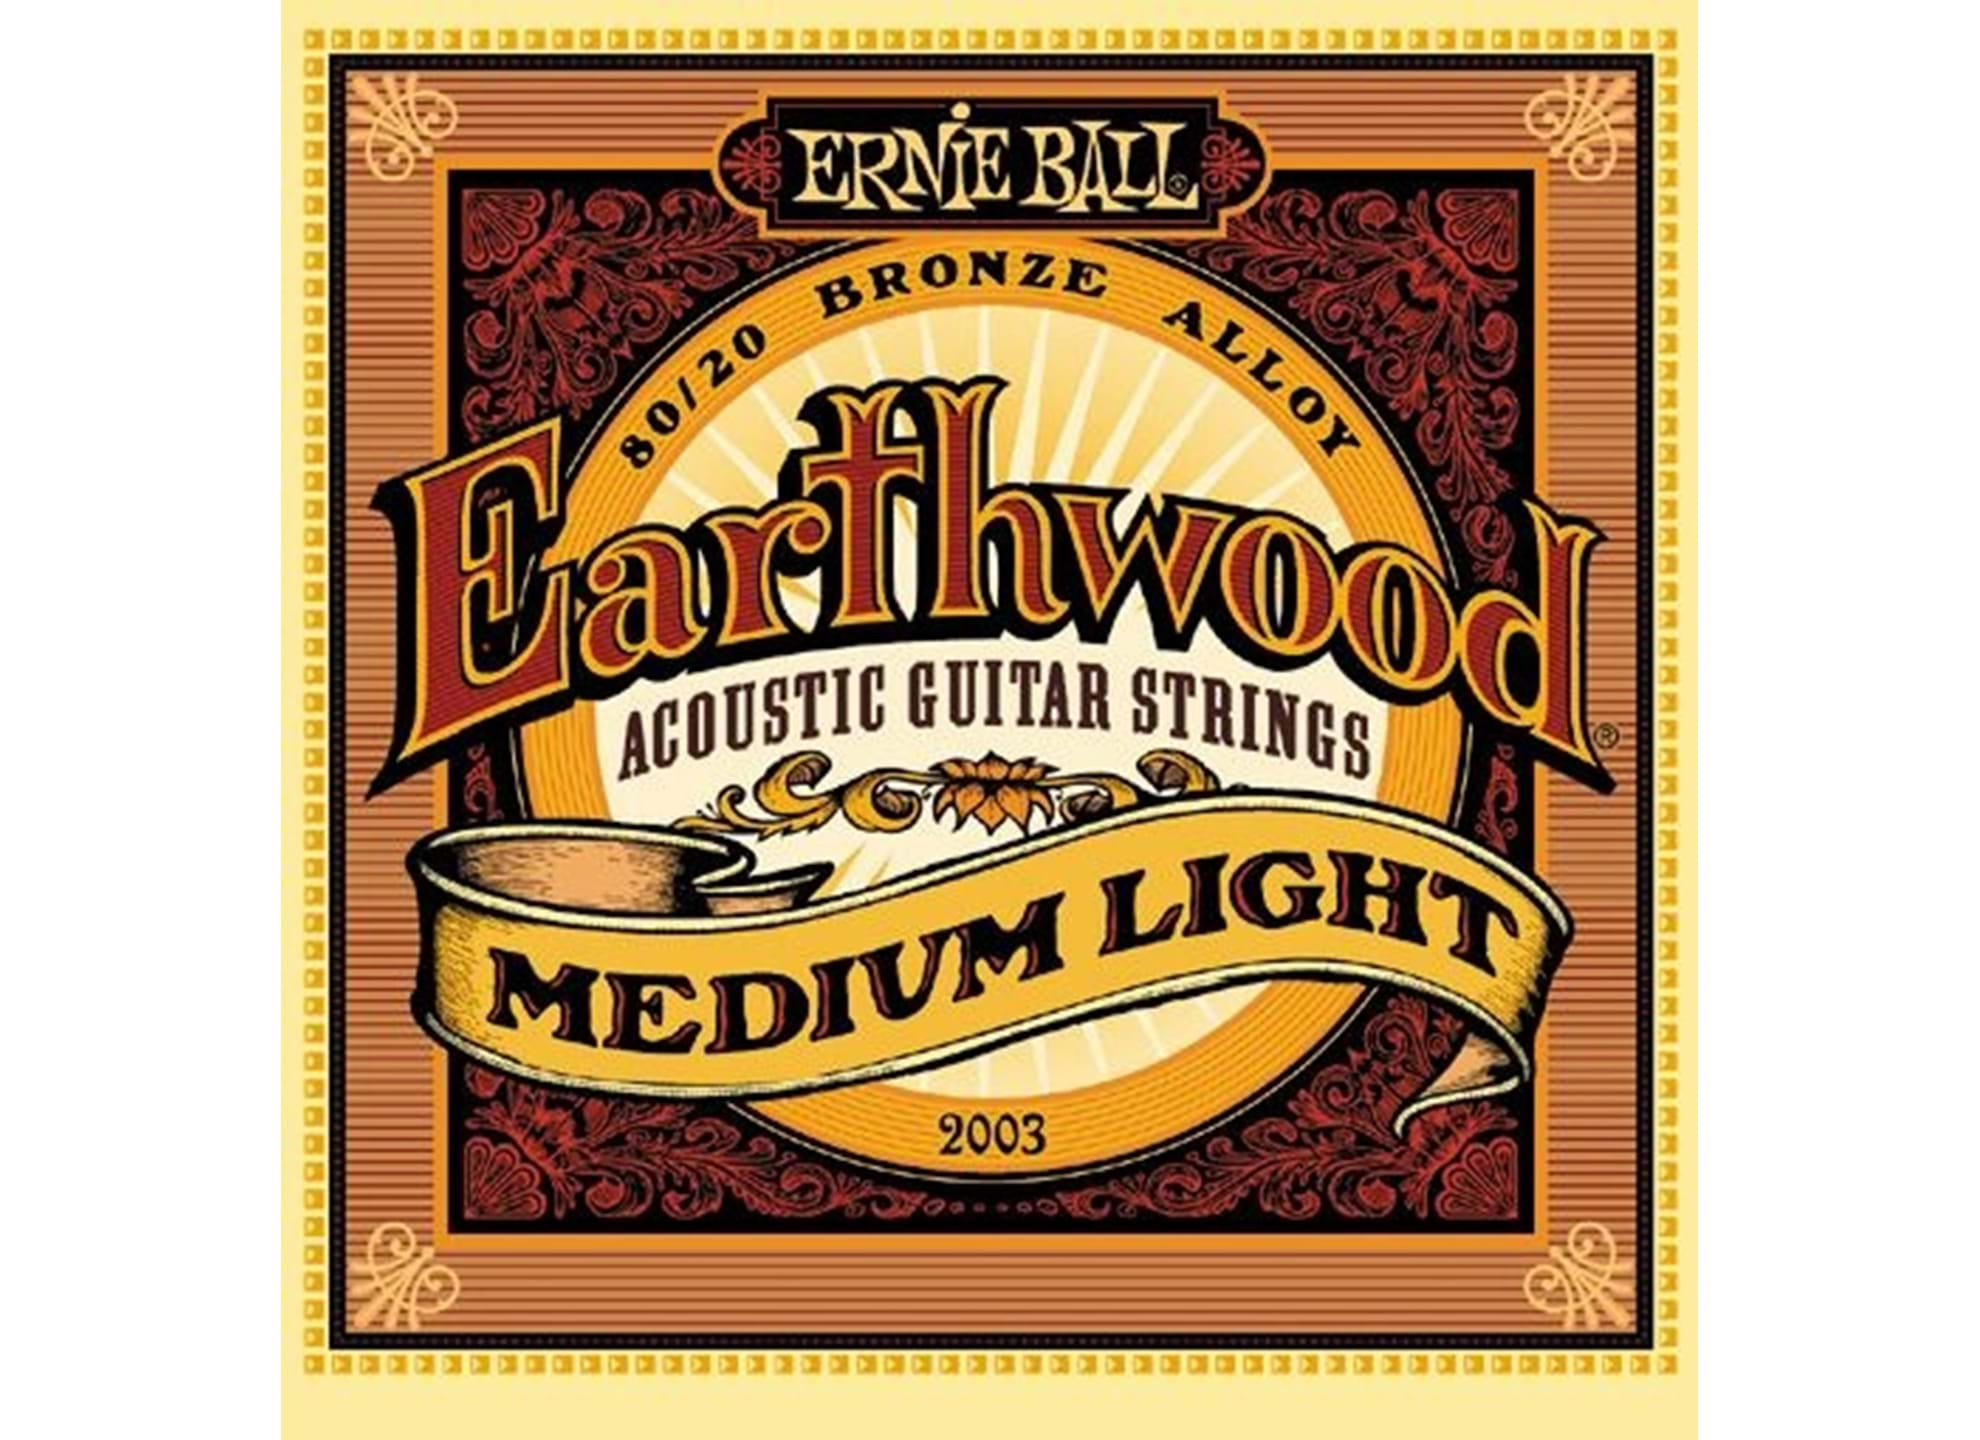 012-054 Earthwood Medium Light 2003